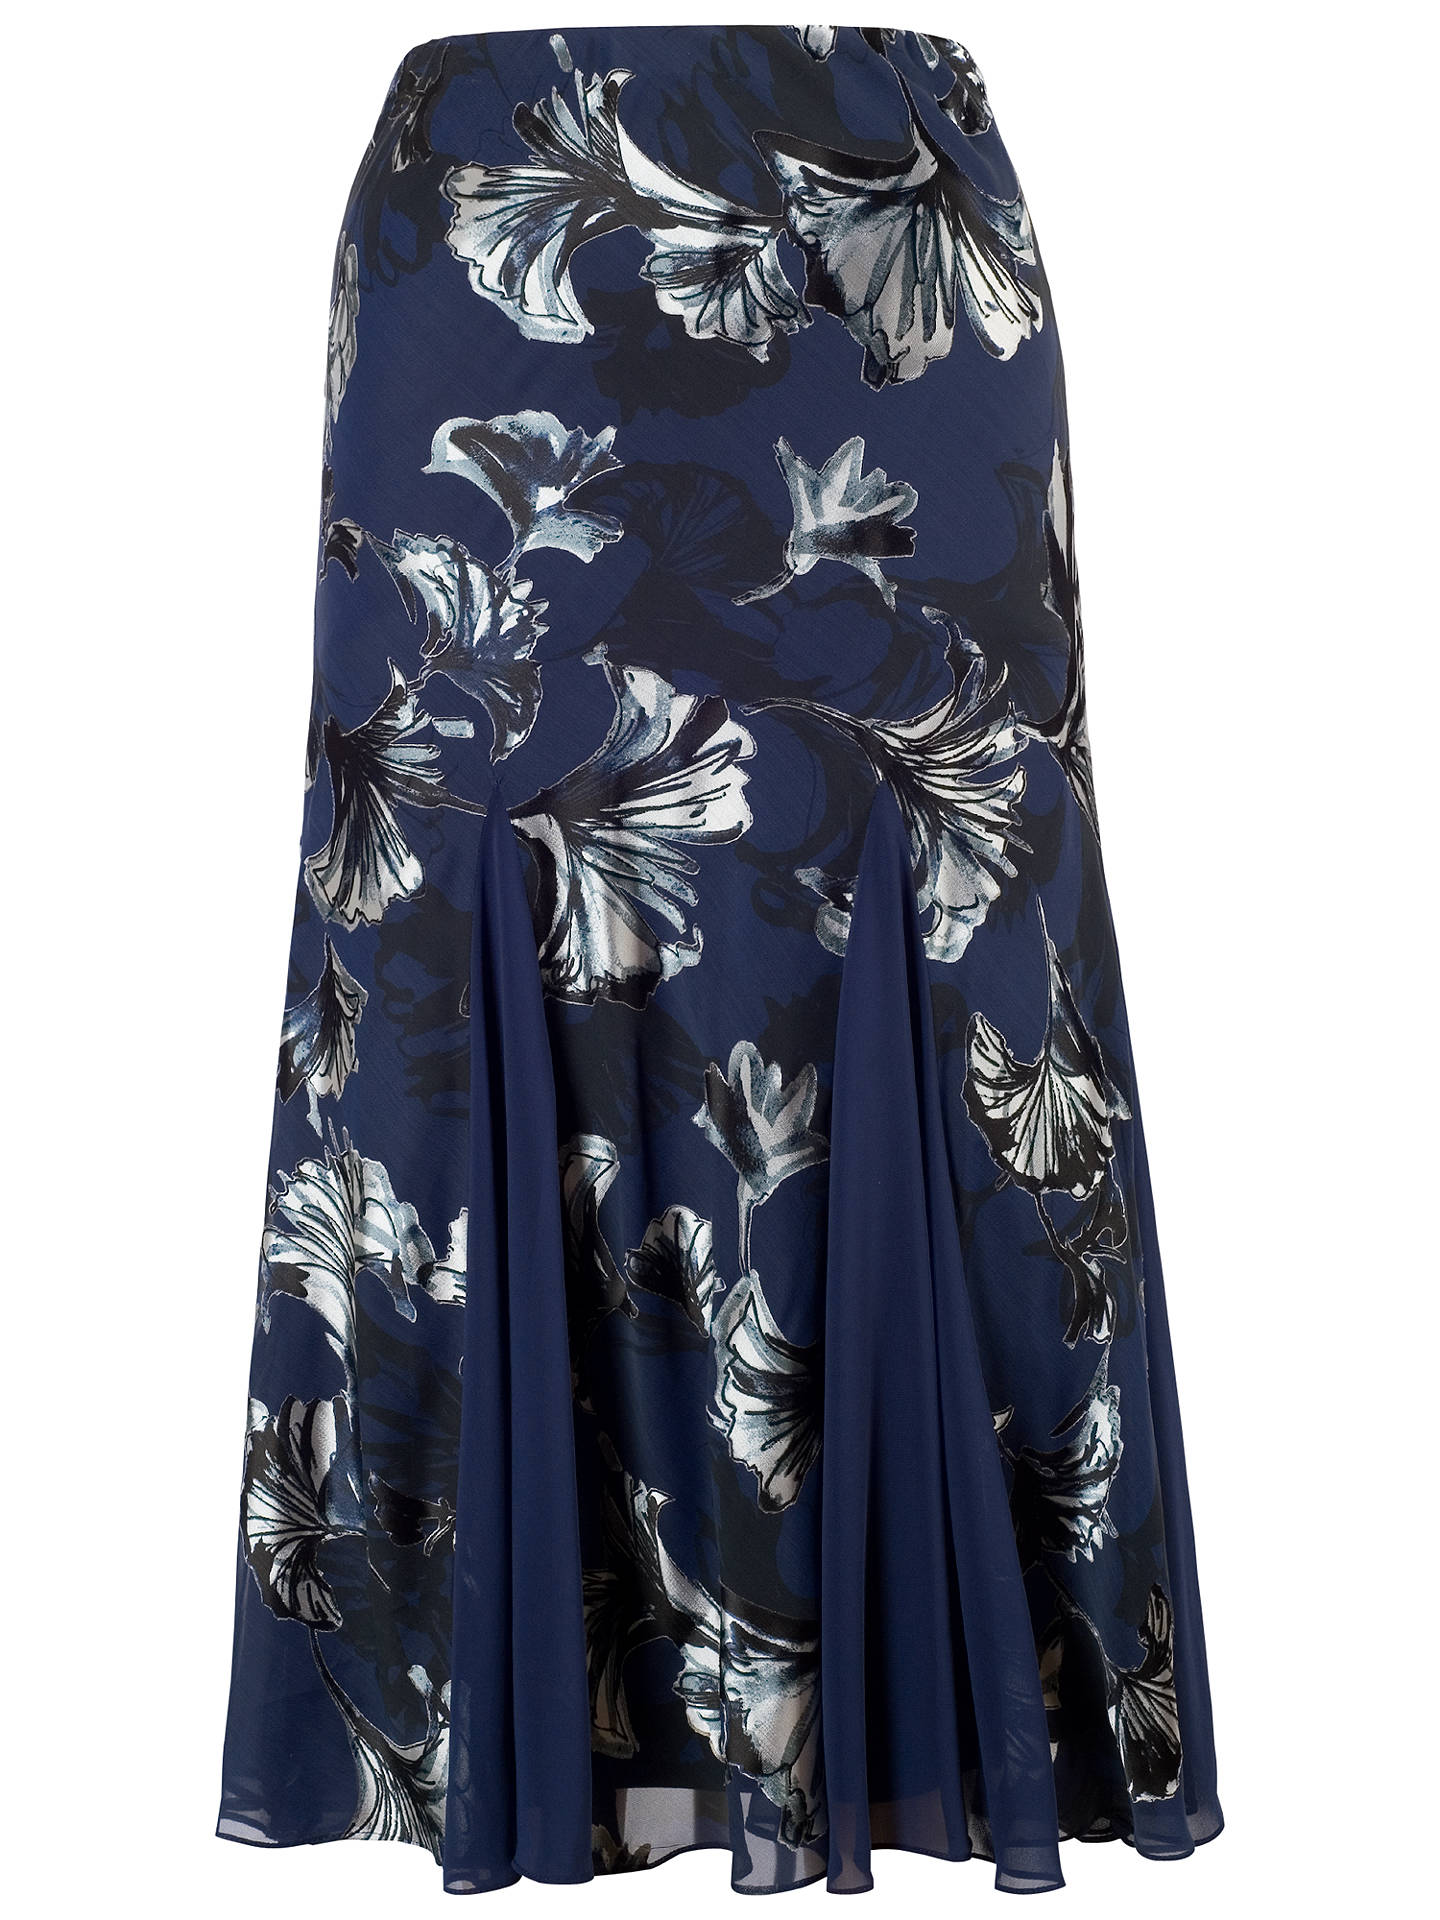 BuyChesca Contrast Trim Fan Print Skirt, Navy, 12 Online at johnlewis.com